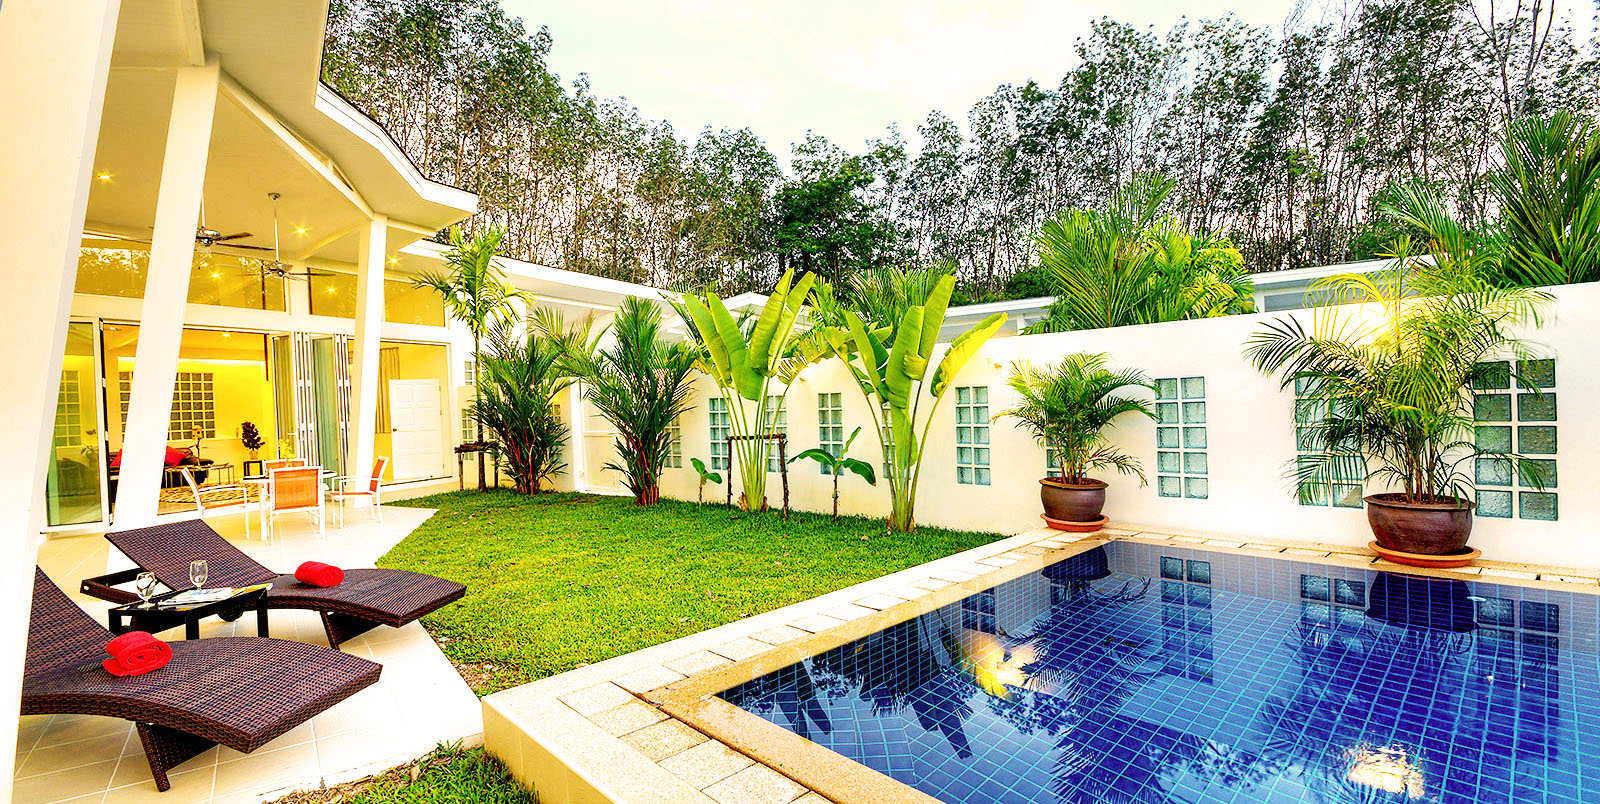 Delta properties villa 3 banana for Piscine jardin tropical